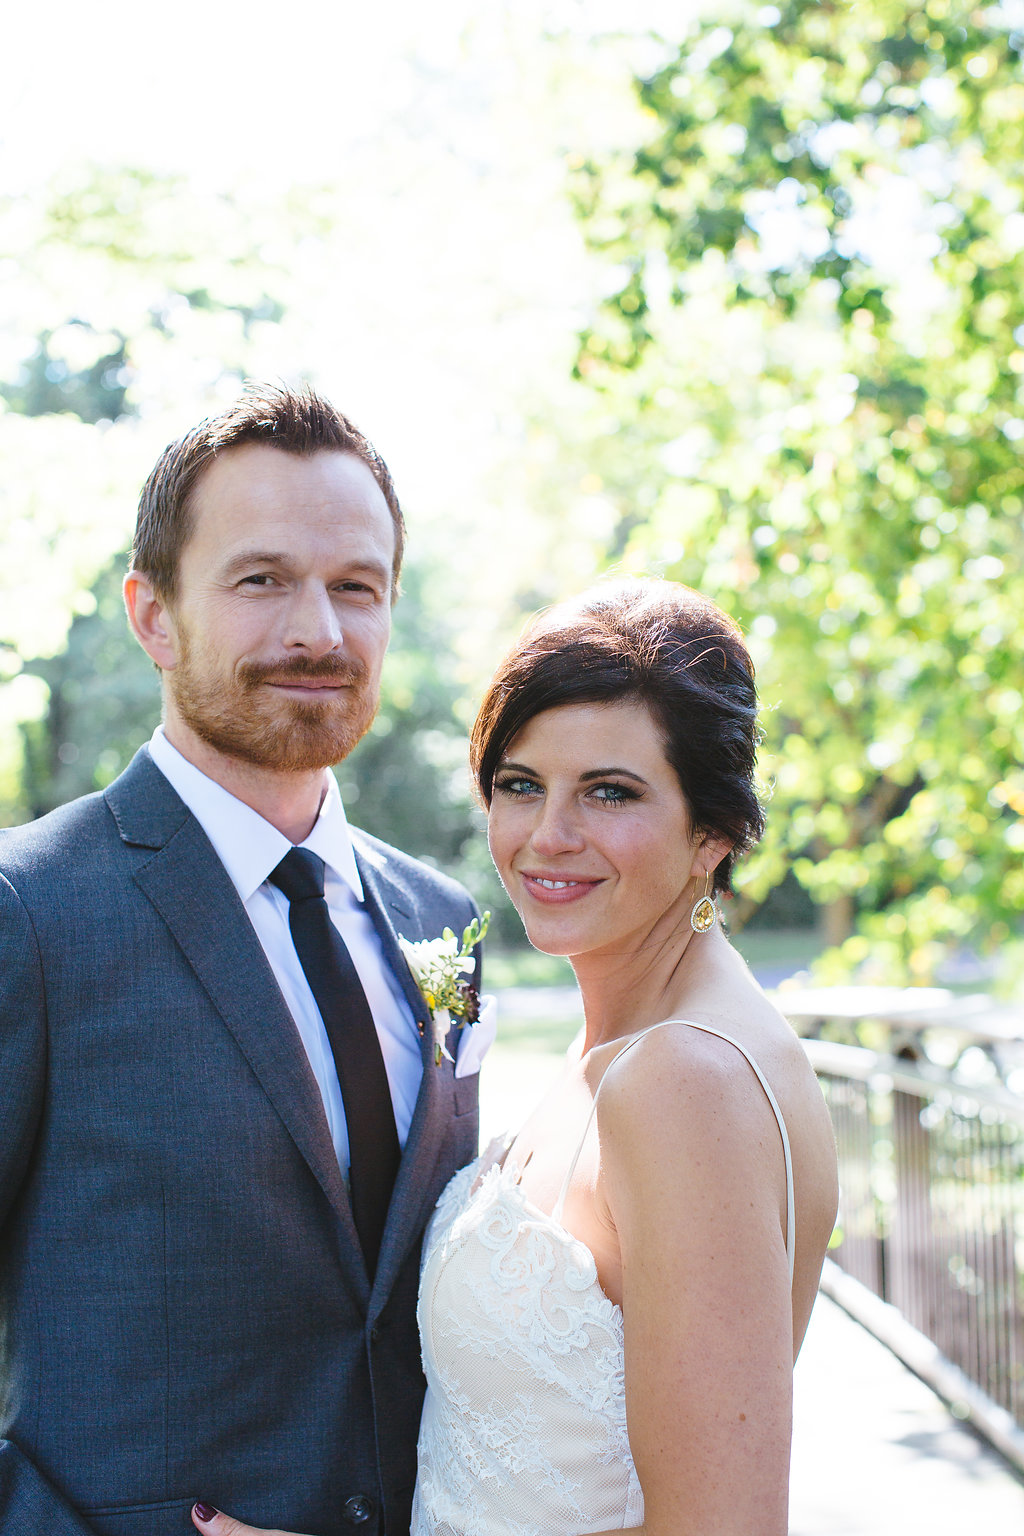 Photo by Aaron Rice | Meghann and Ty married at Annunciation Catholic Church in Minneapolis